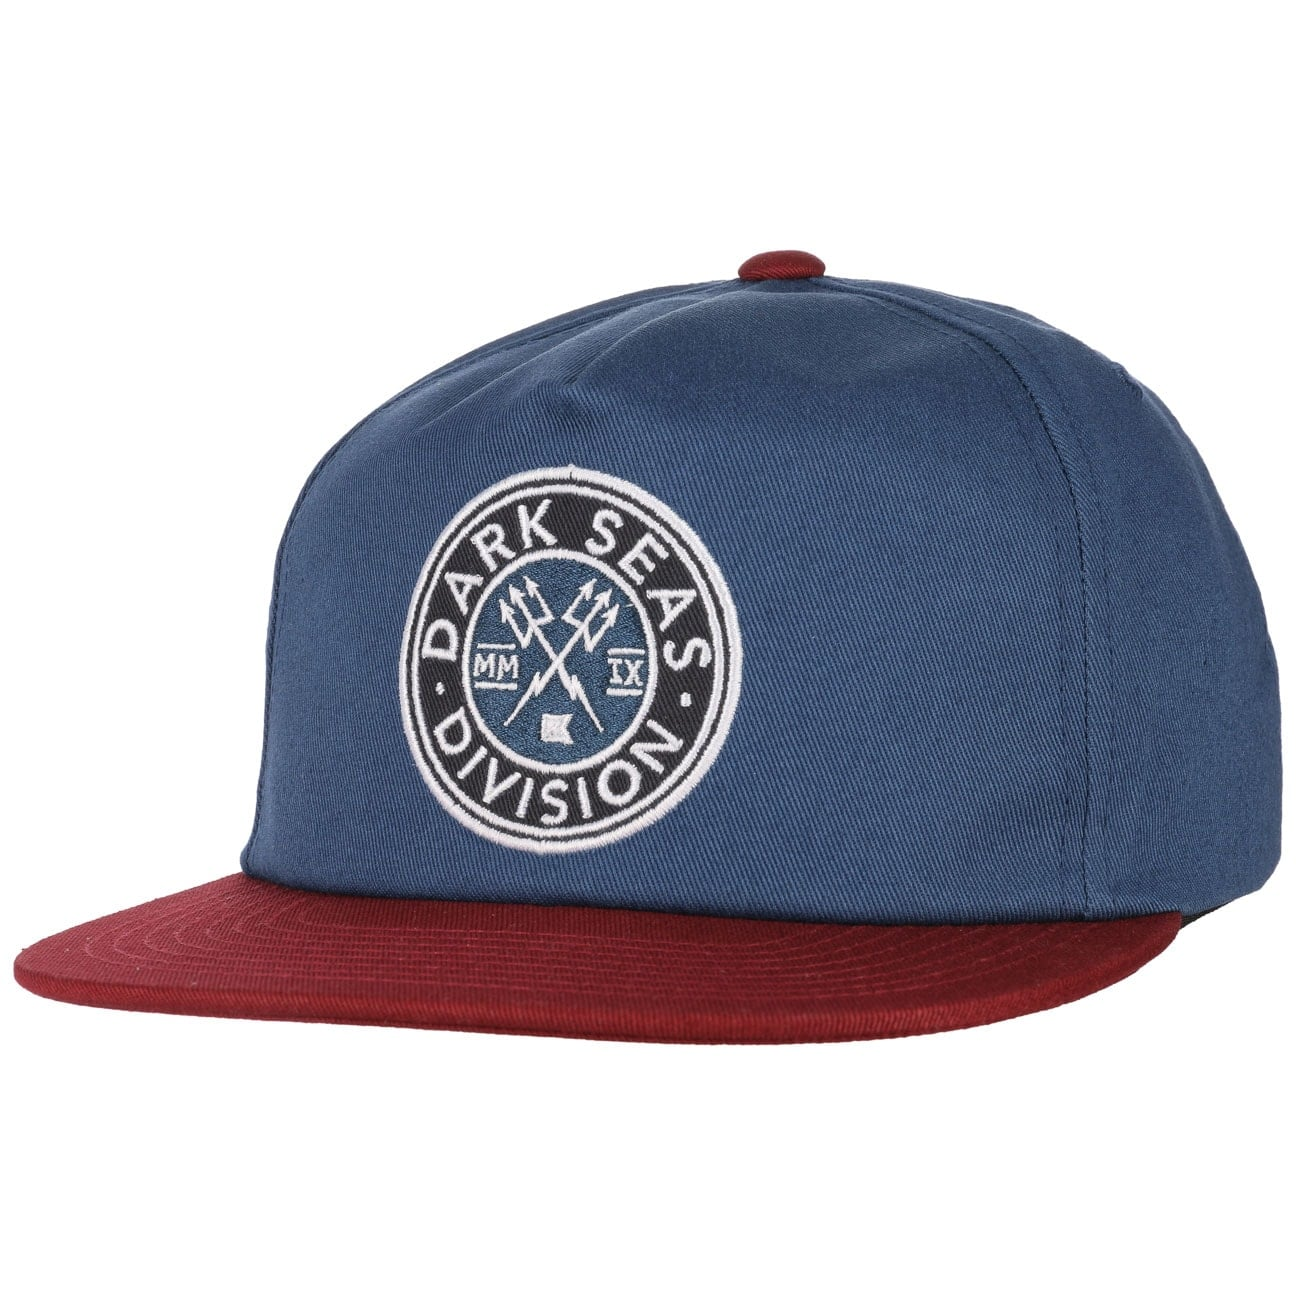 Gorra Journeyman Twotone by Dark Seas  gorra de baseball